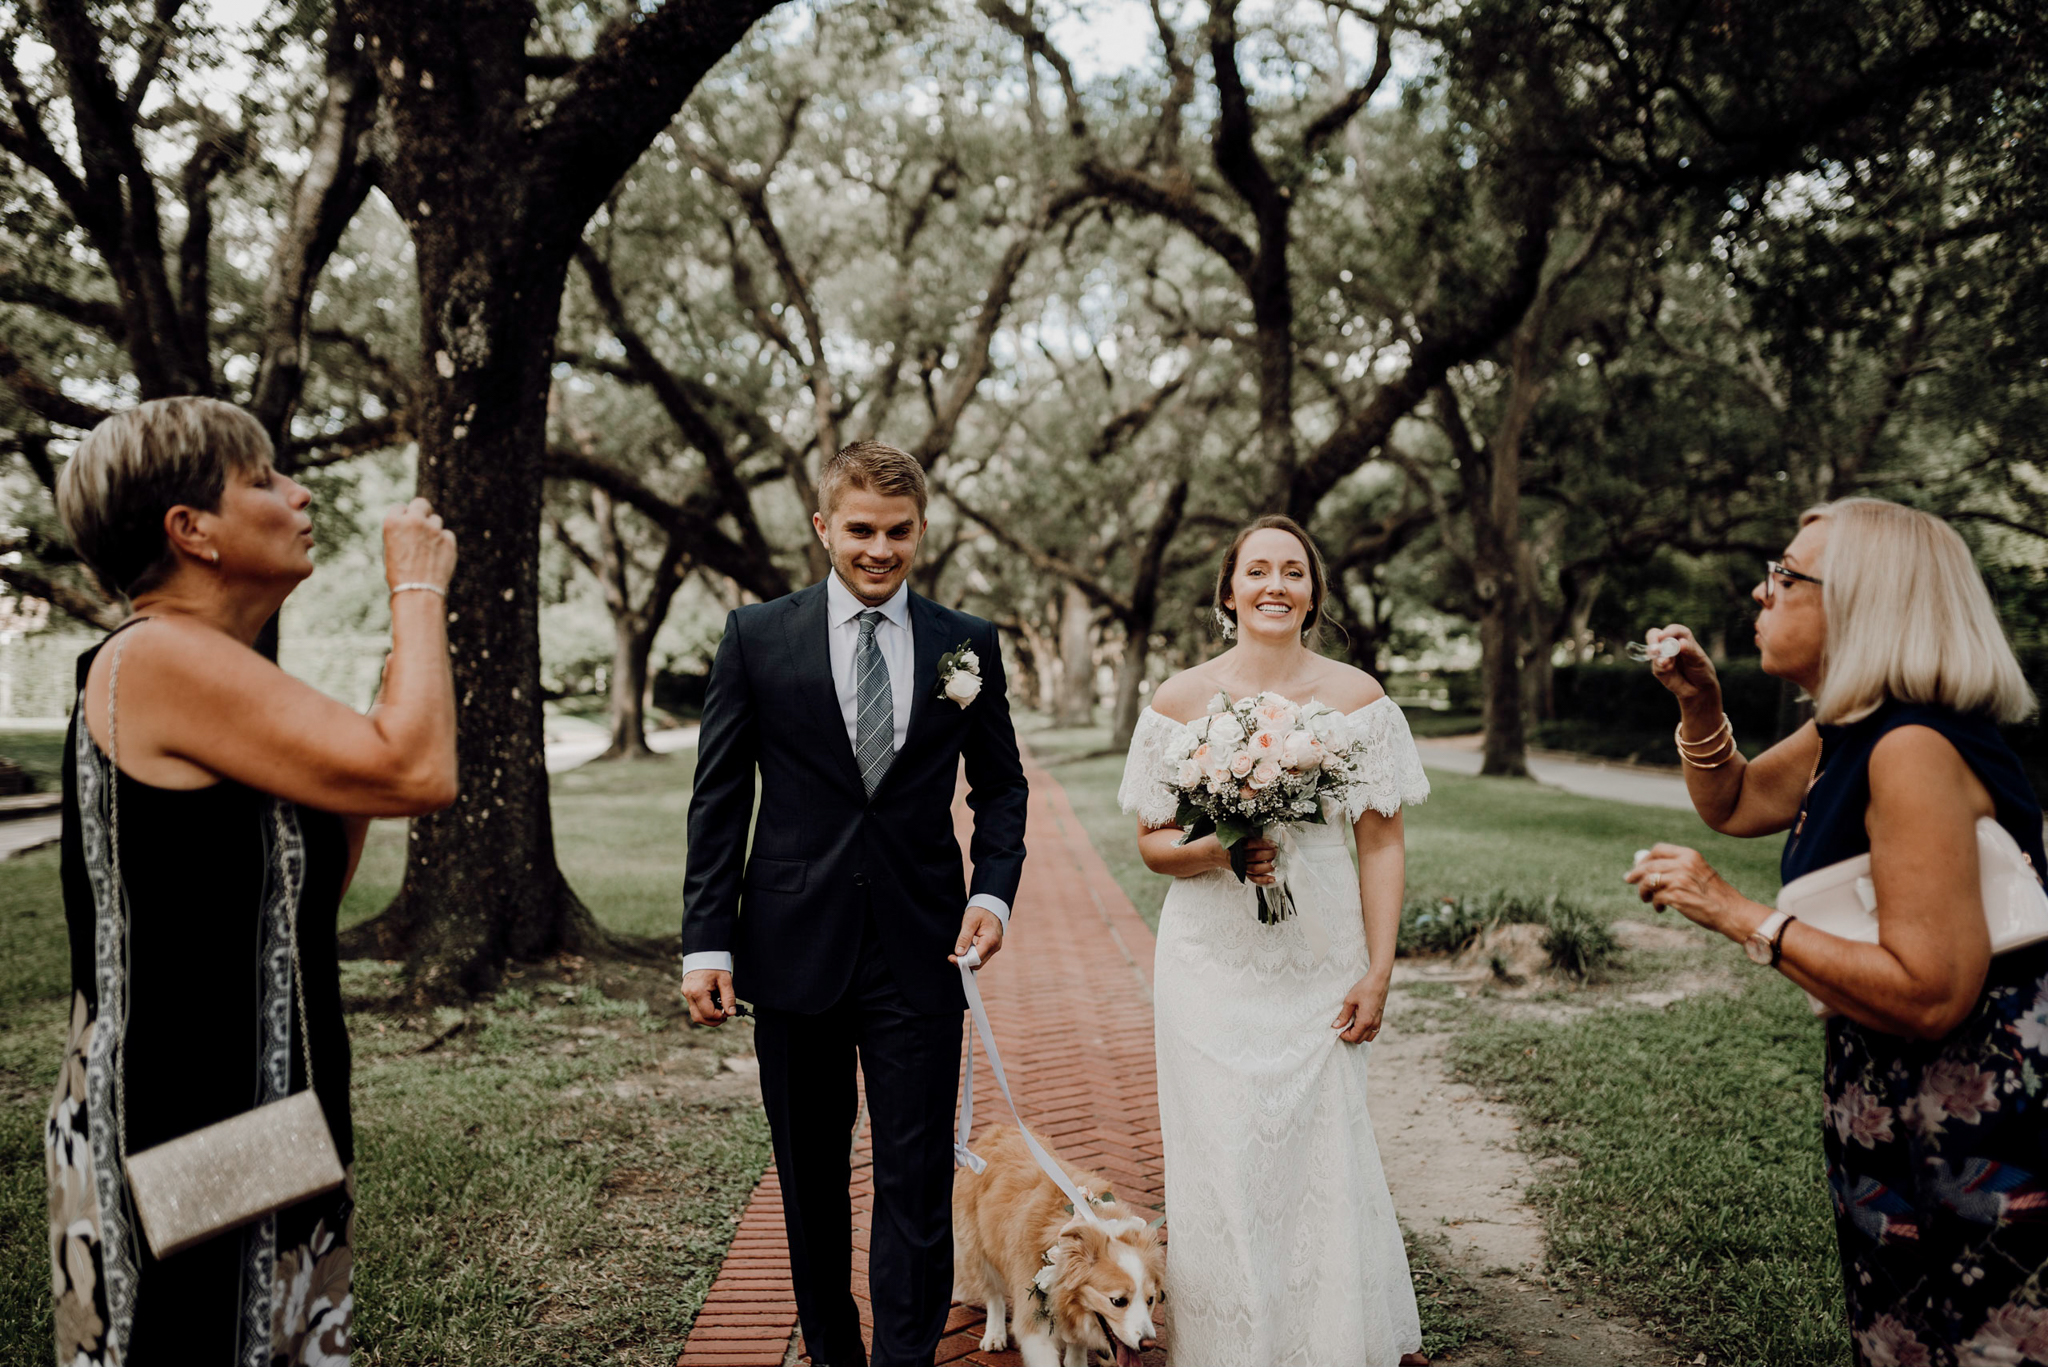 Houston Wedding Photographer-North Blvd Intimate Elopement- Houston Wedding Photographer -Kristen Giles Photography-47.jpg